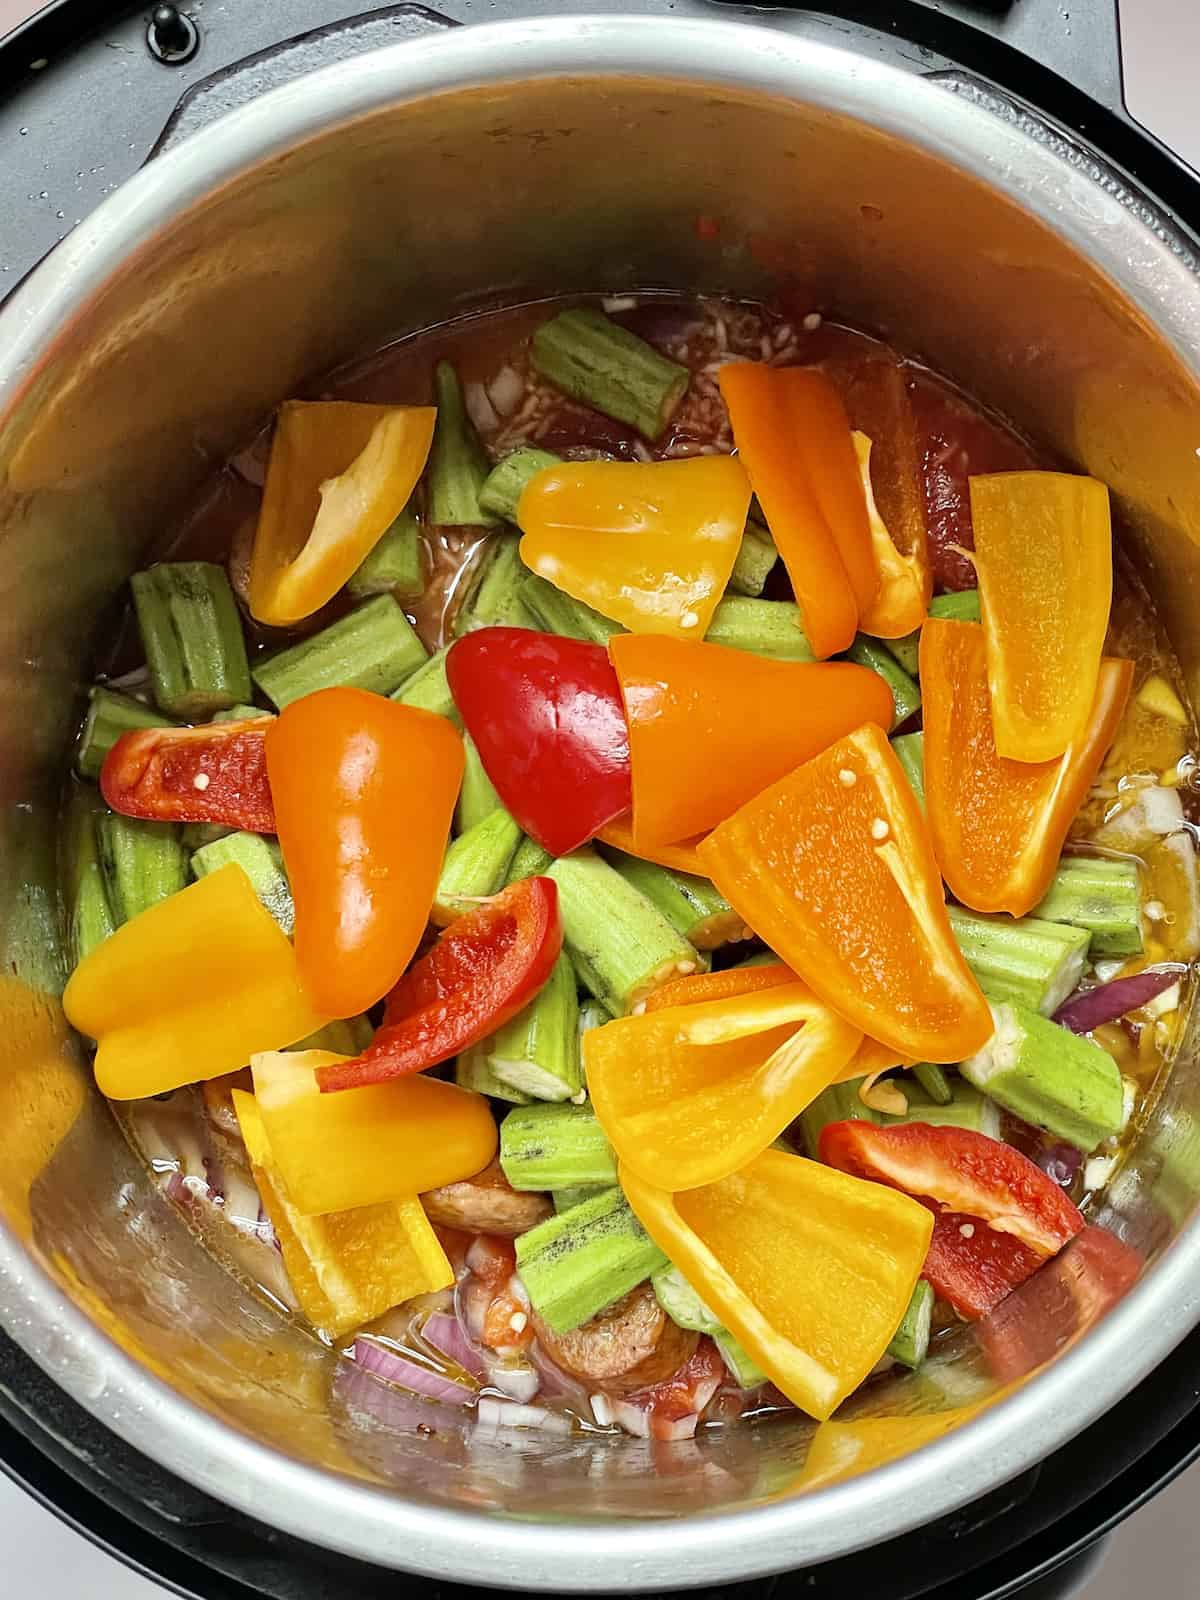 peppers, okra, and other ingredients in the instant pot